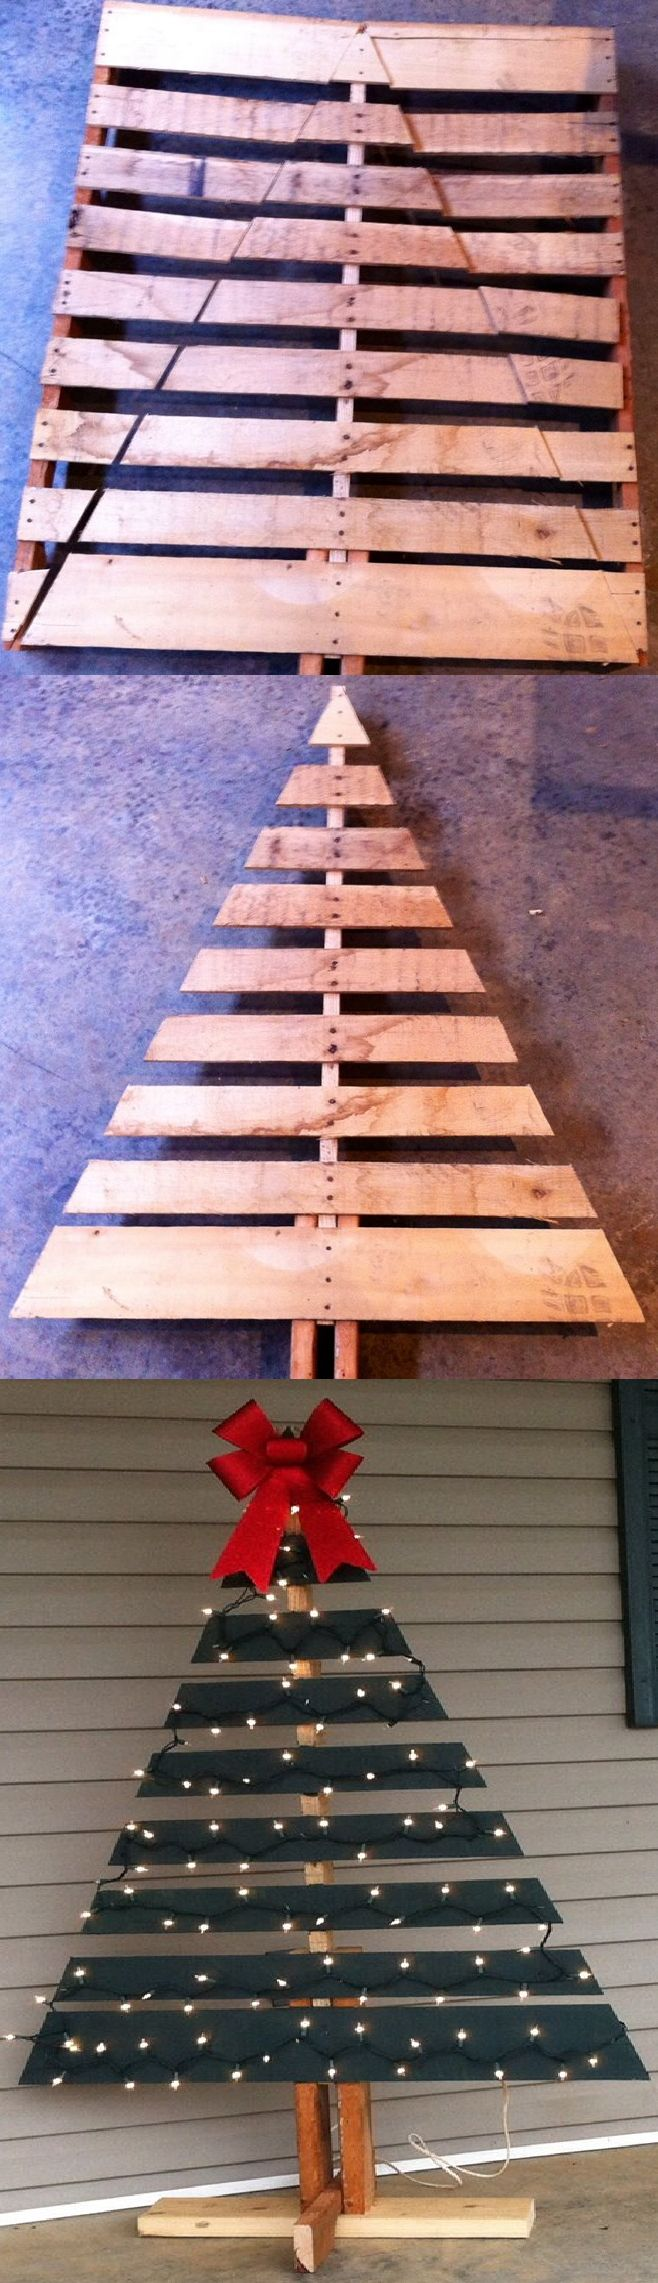 diy pallet christmas tree instructions